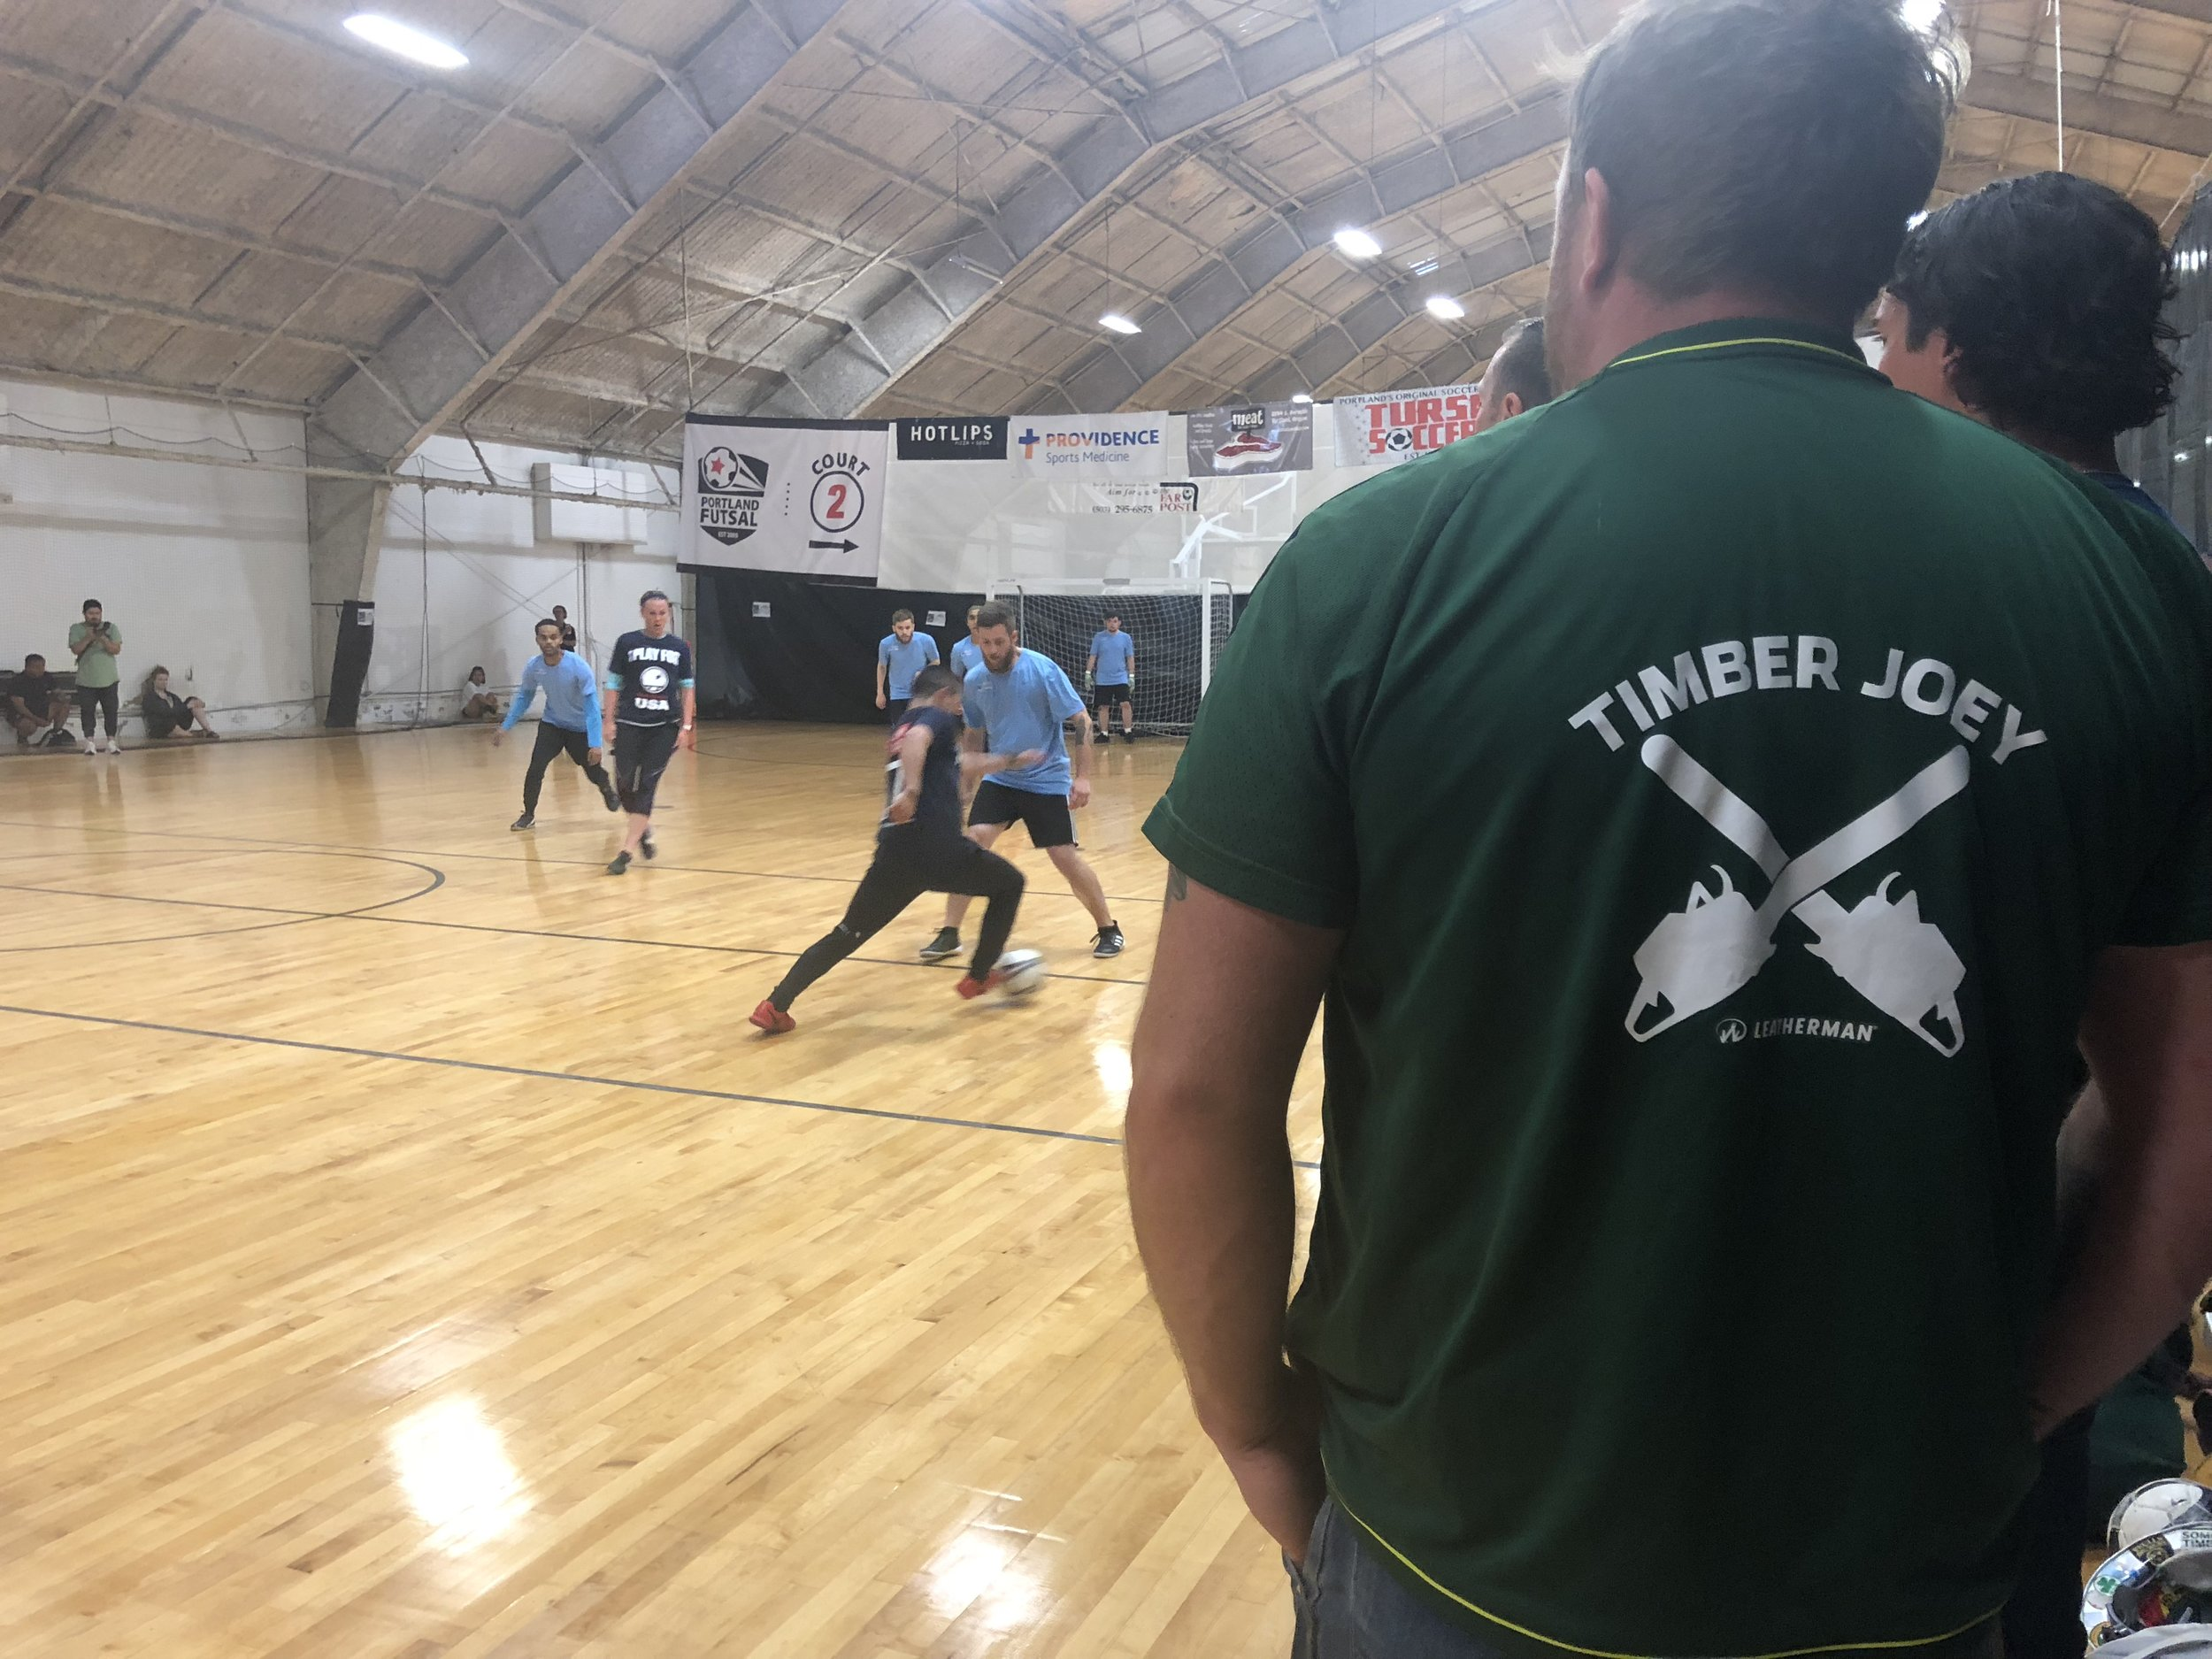 1st Annual Social Change Cup was a huge success! Timber Joey, along with several other Timbers and Thorns players were there to play and to support.